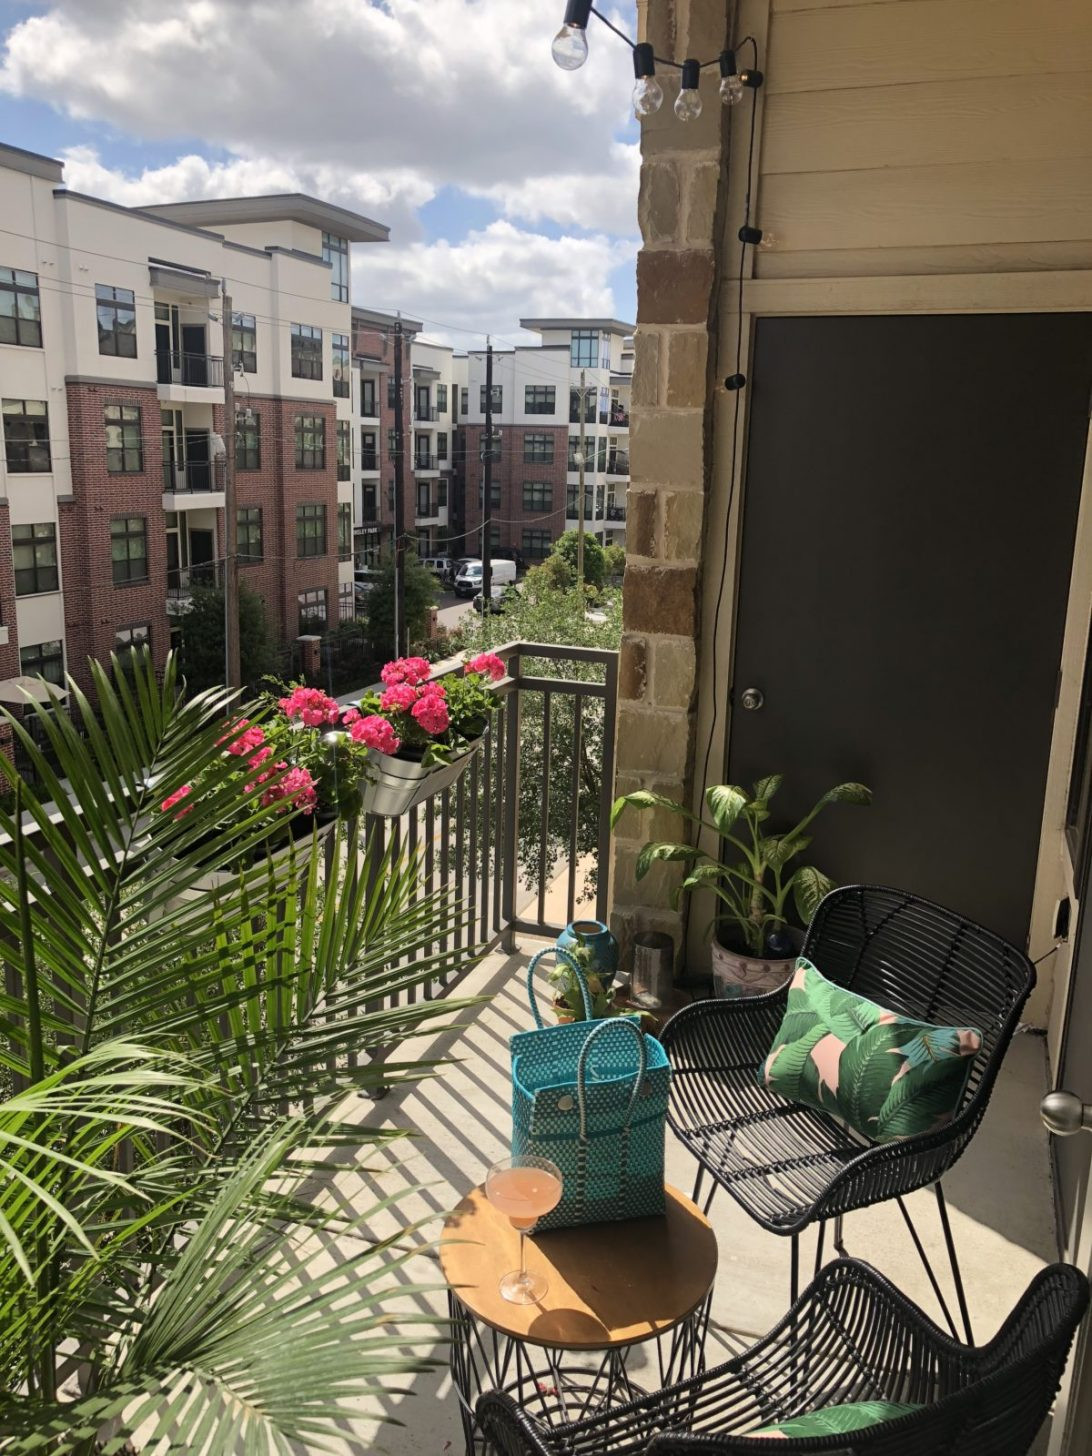 Best ideas about Small Apartment Patio Ideas . Save or Pin Apartment Patio Decor Maribointelligentsolutionsco Fun Now.